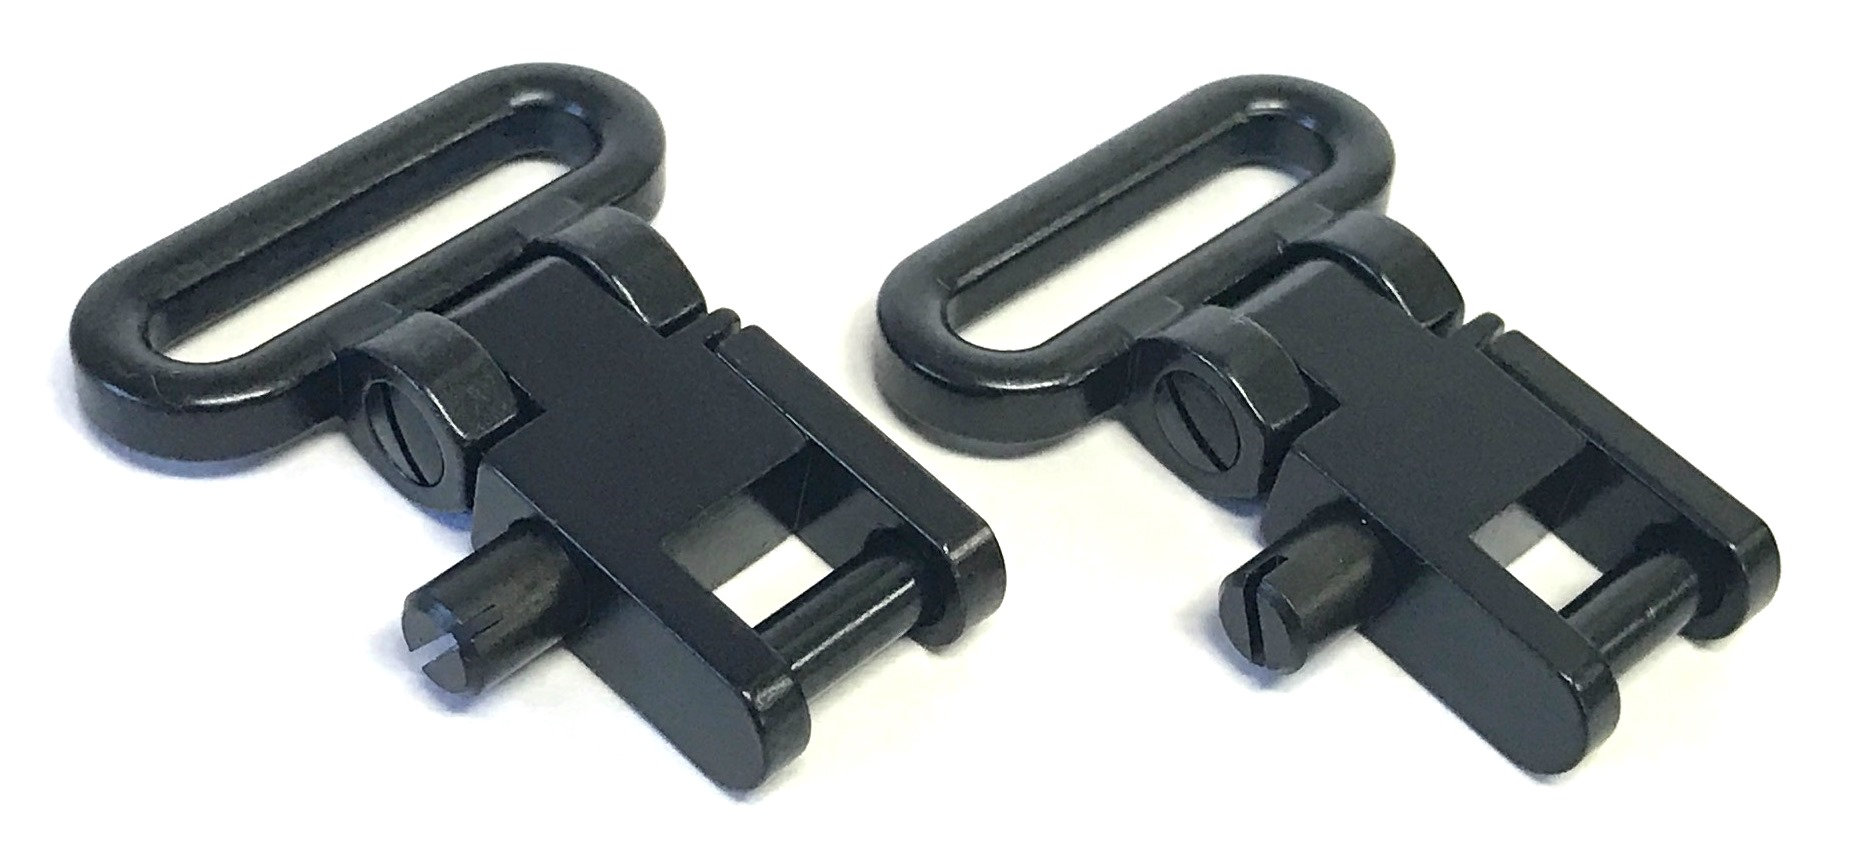 NECG Quick-Detachable Sling Swivel Sets - R-308-2 / R-316-2